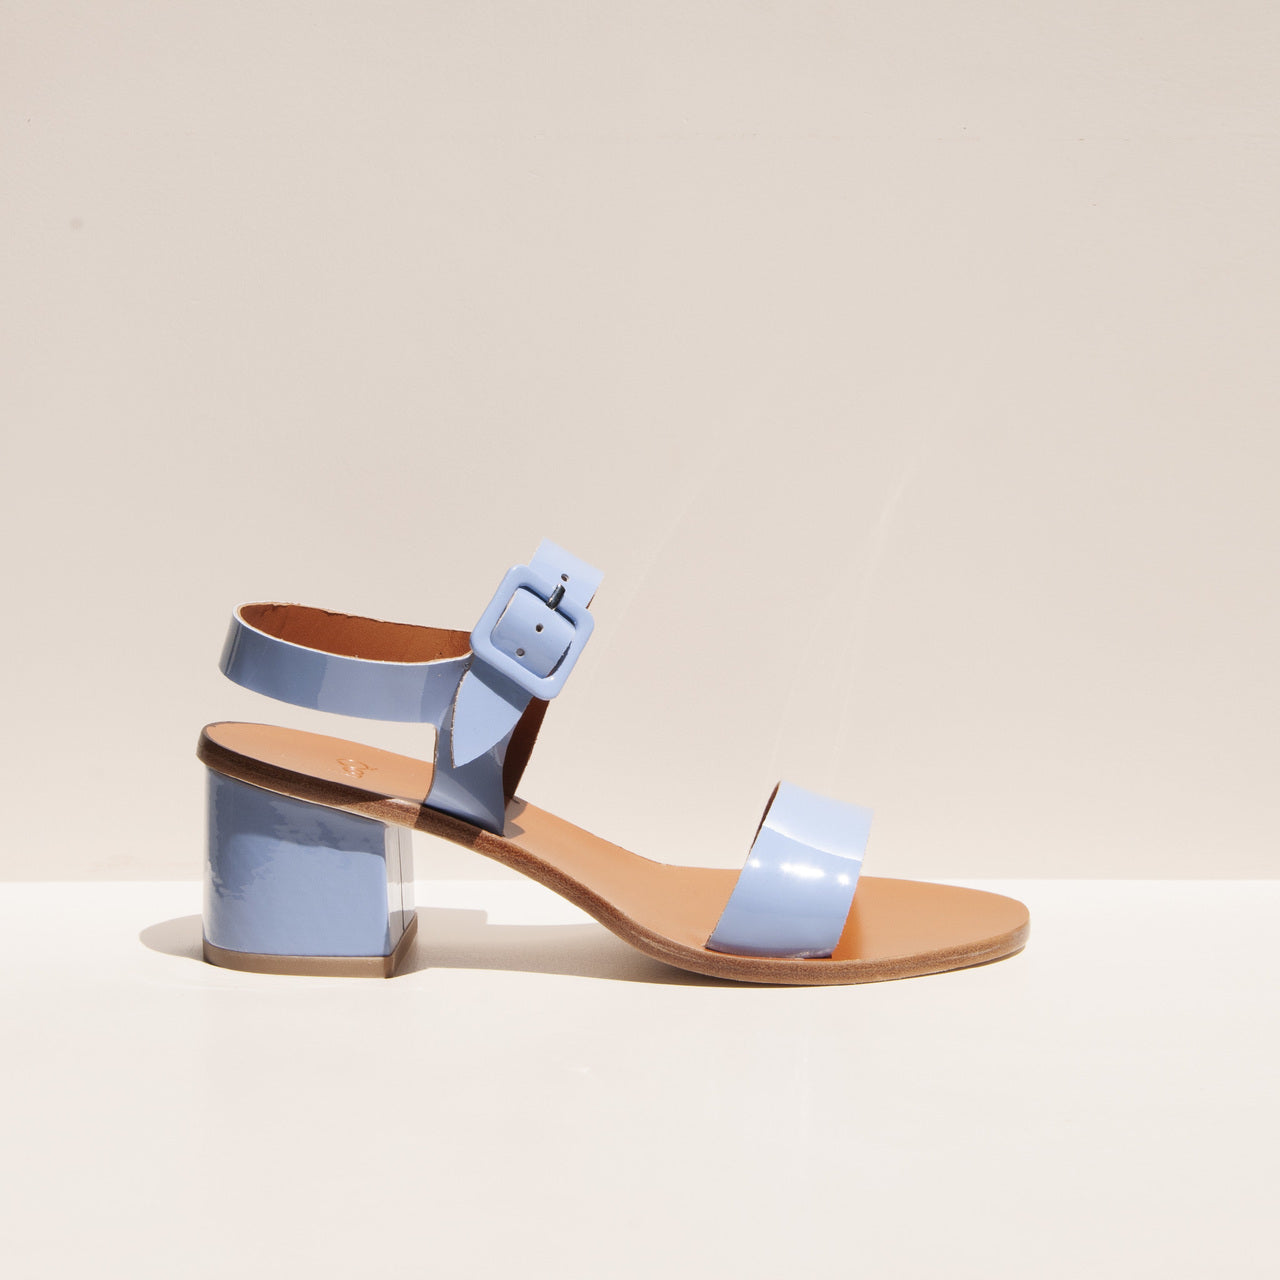 LoQ - Altea Sandal - Mar, side view, available at LCD.